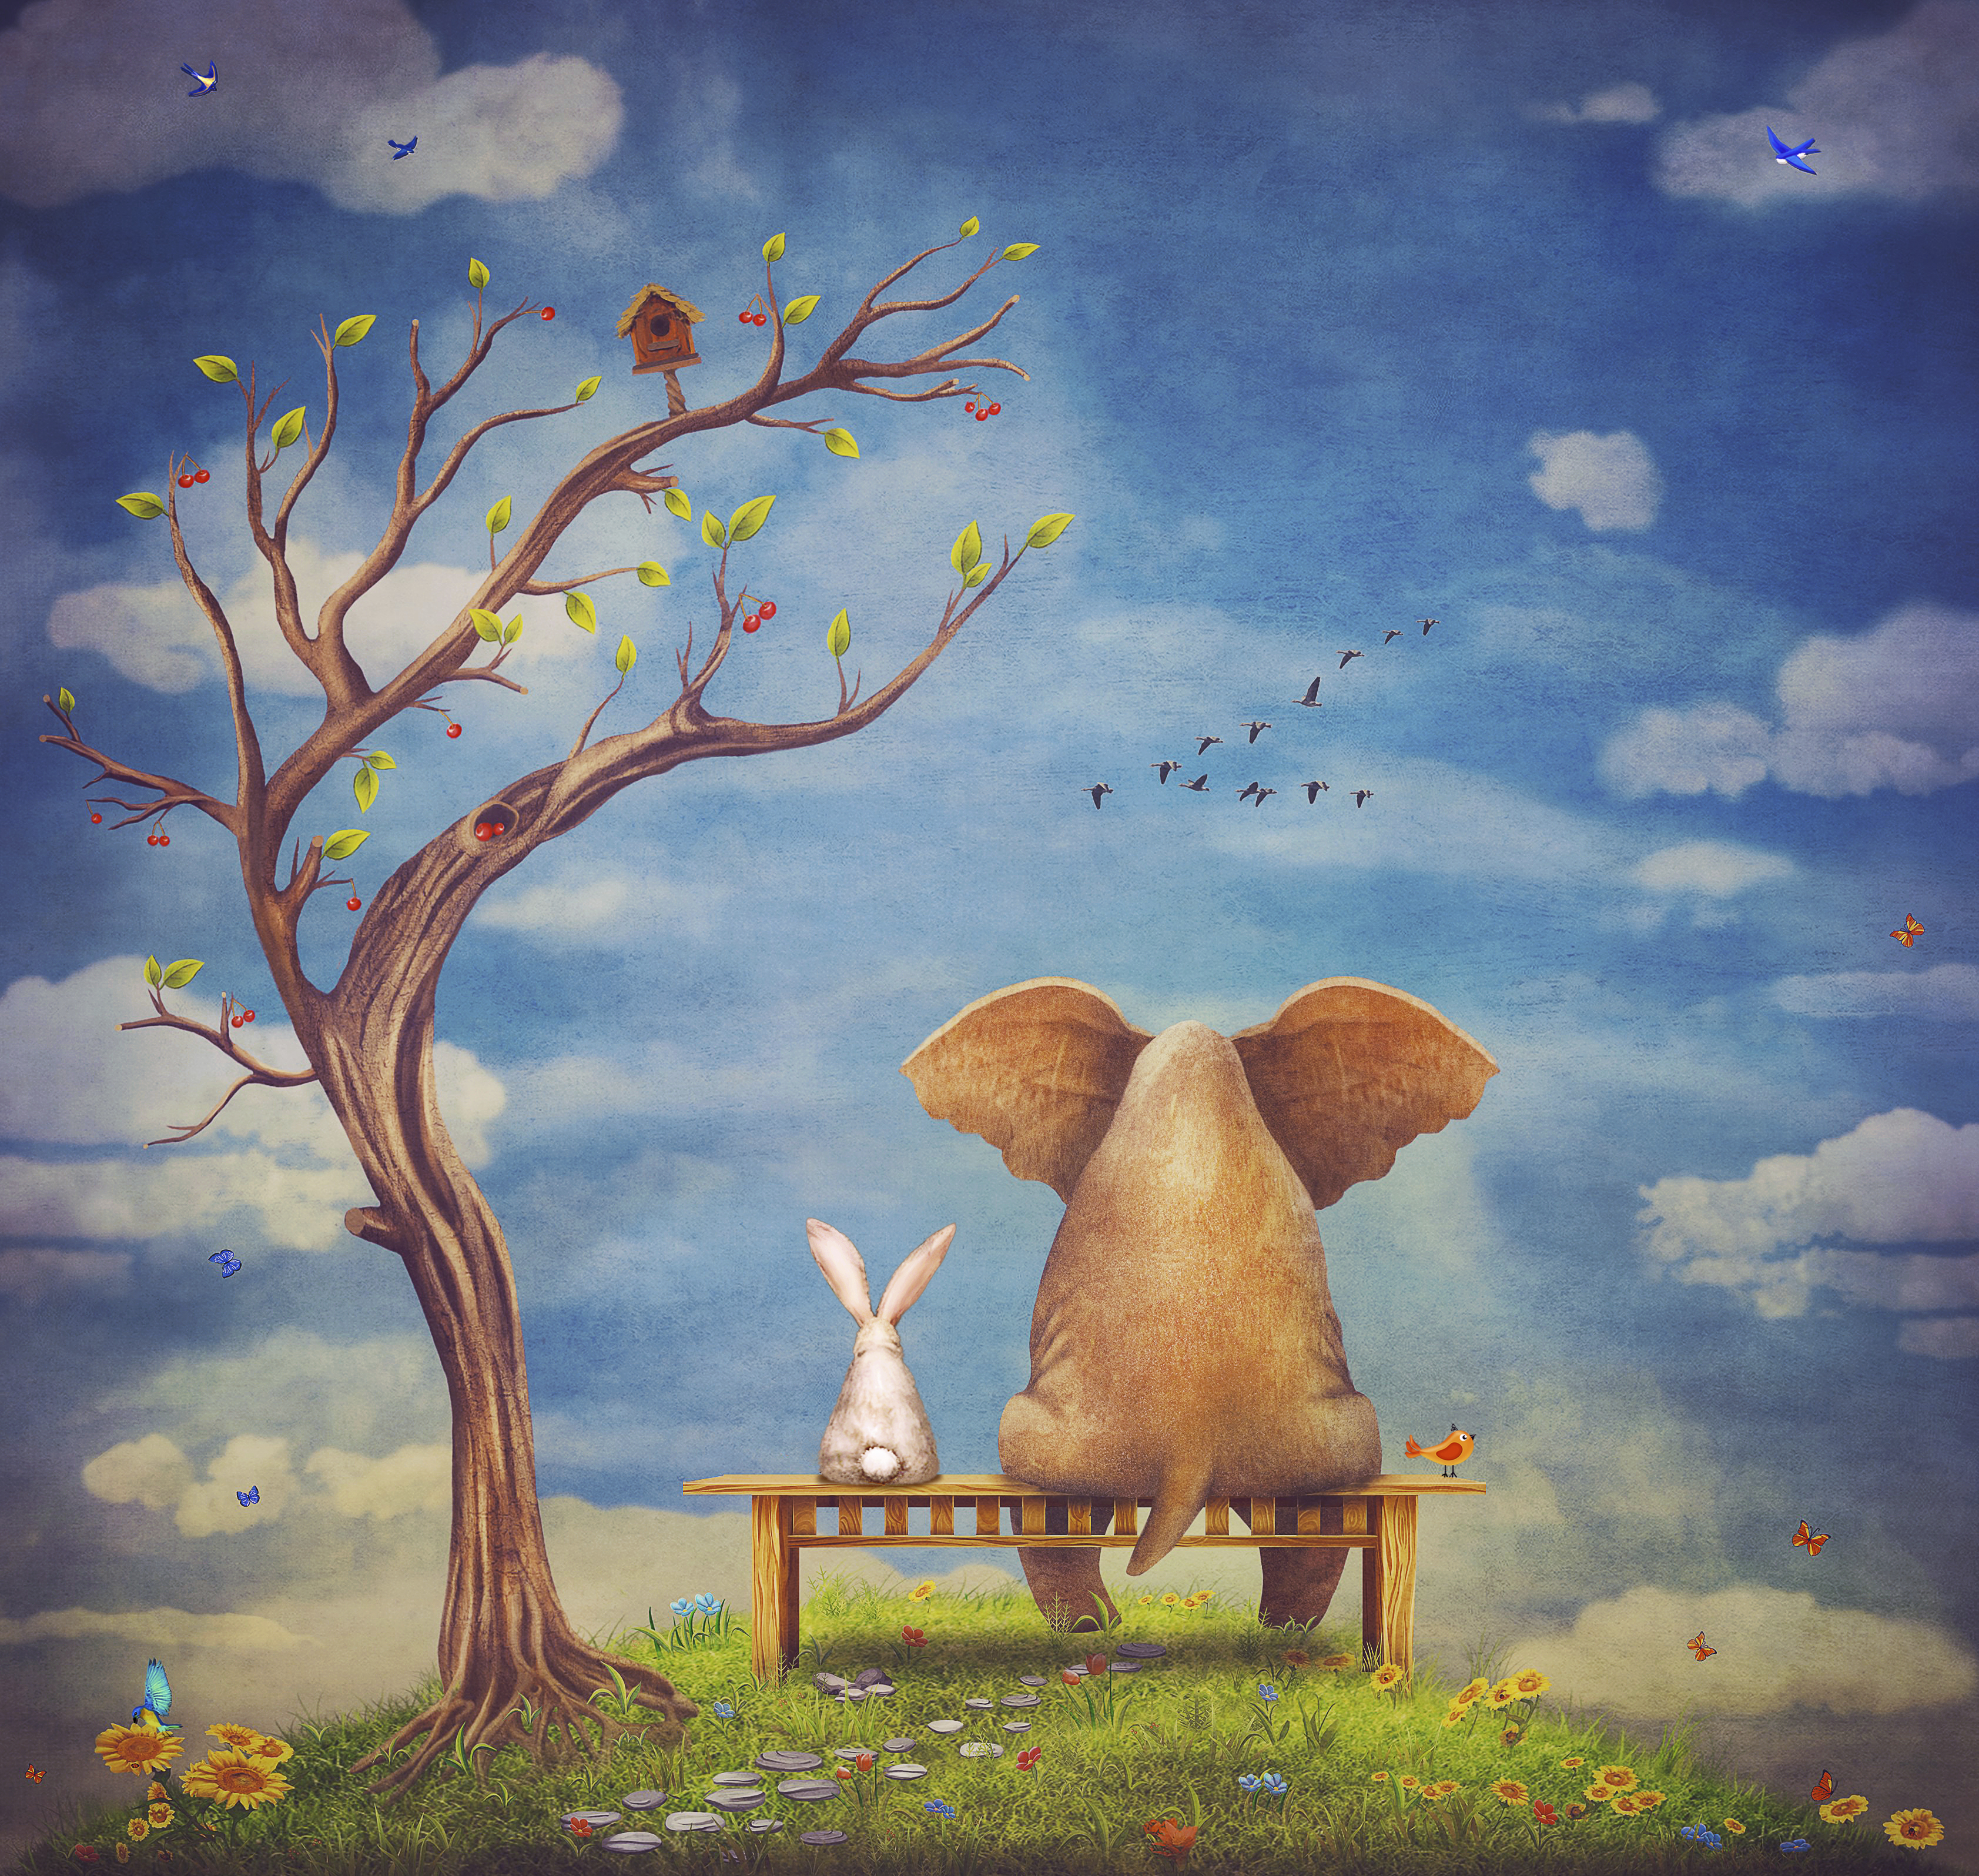 Elephant and rabbit sit on a bench on the glade 000075861525 Large